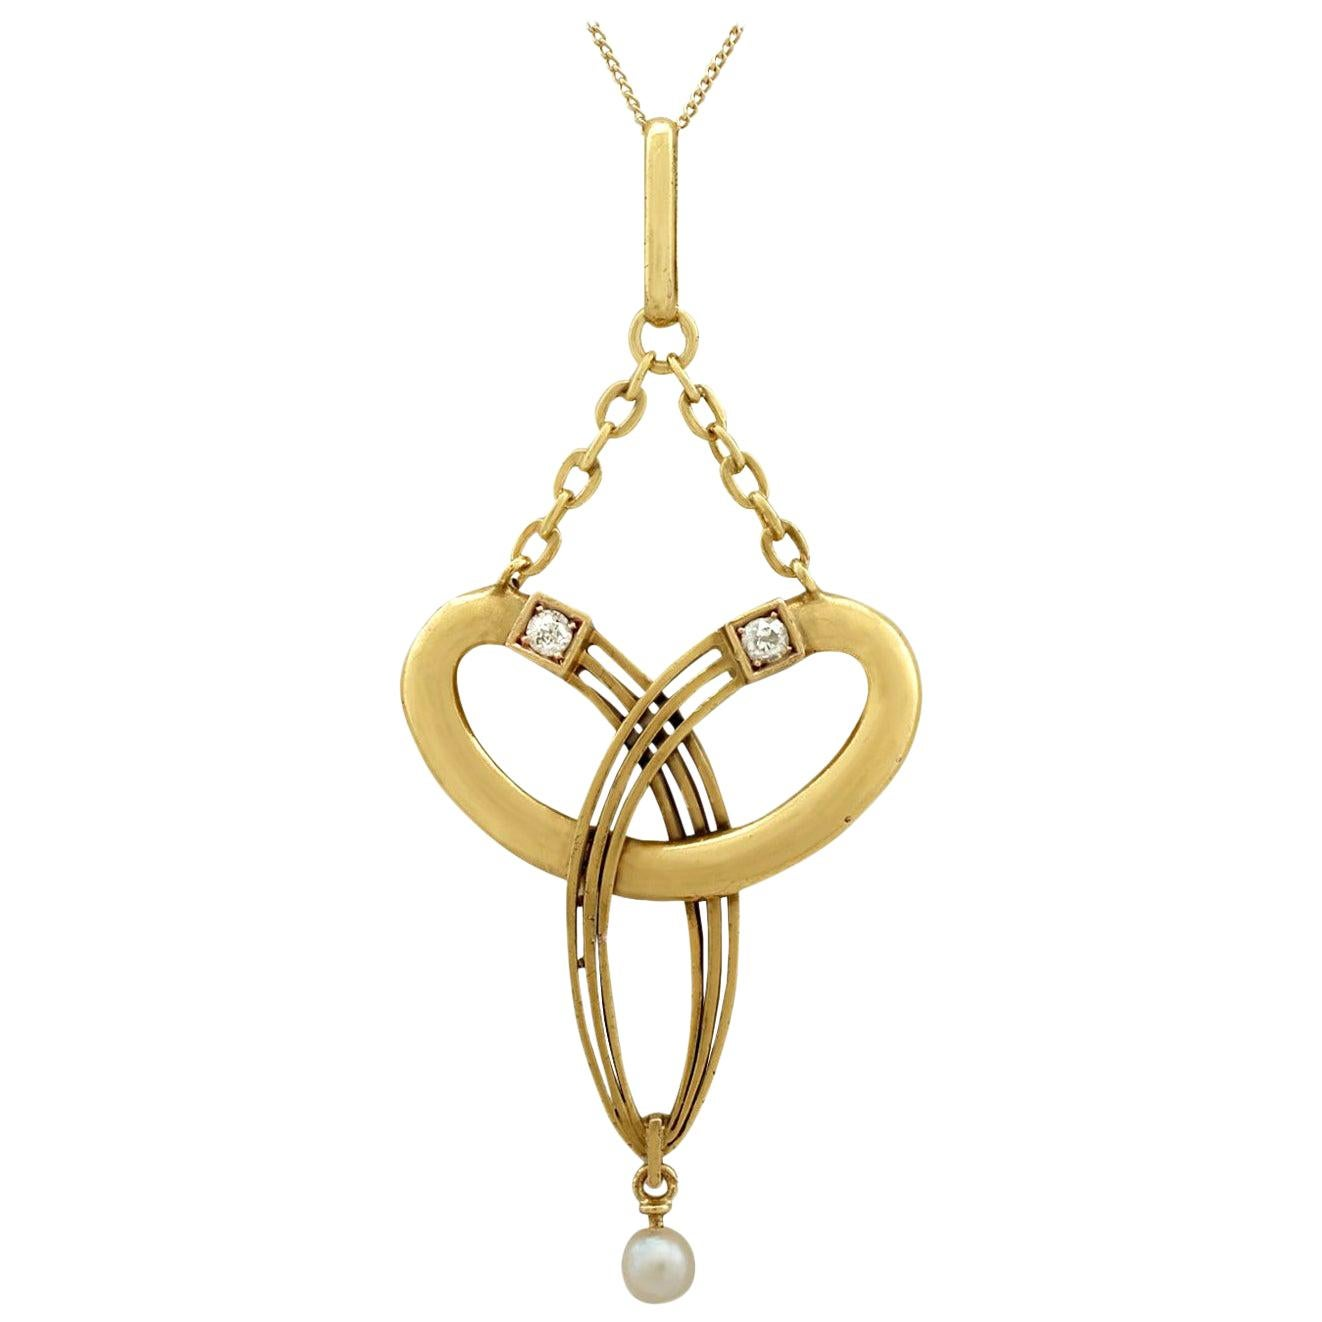 1910s Antique Diamond and Seed Pearl Yellow Gold Pendant